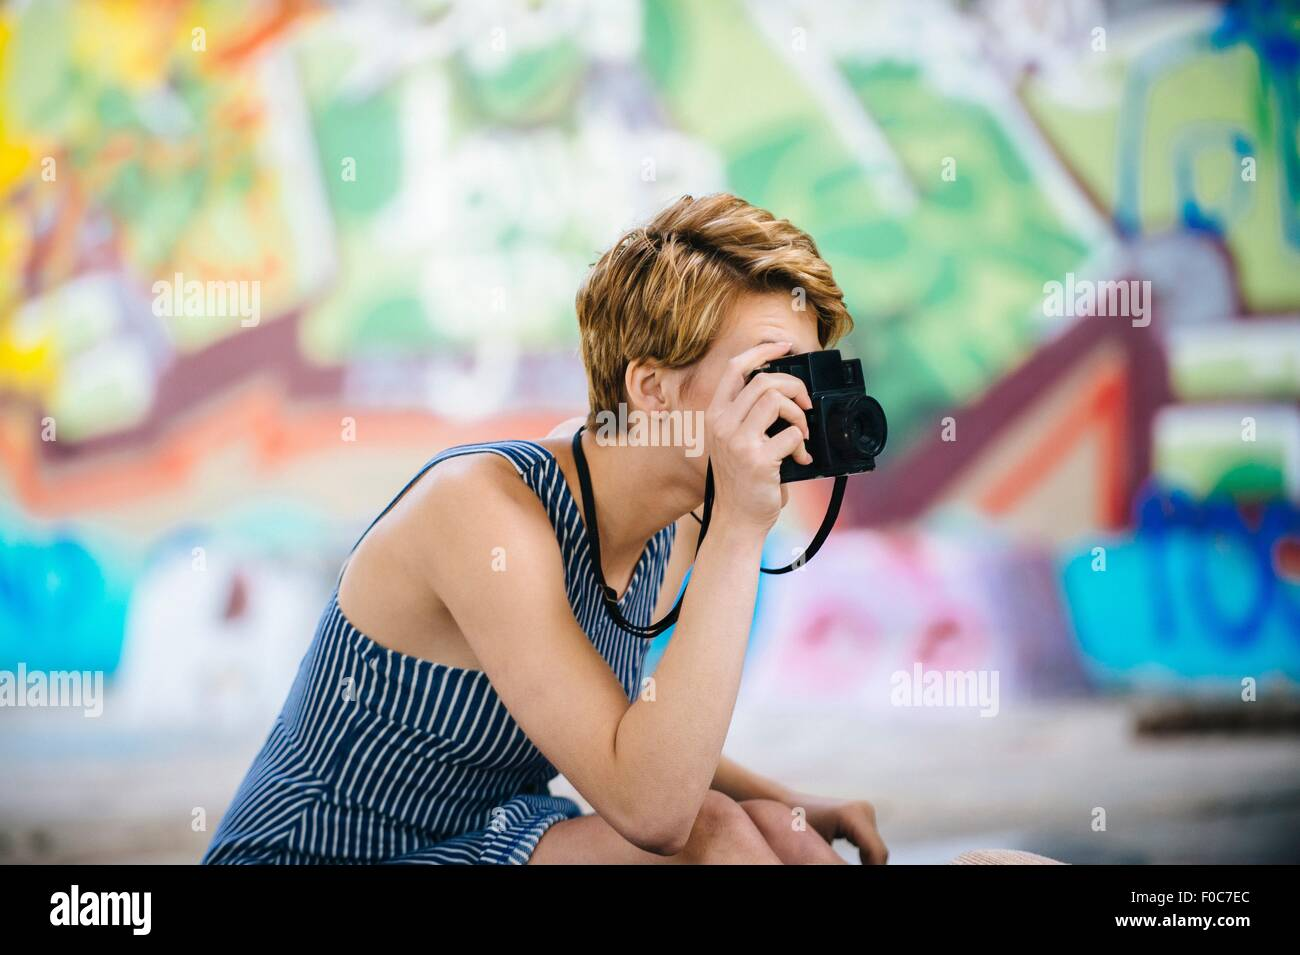 Stylish teenage girl photographing with camera in front of graffiti wall - Stock Image